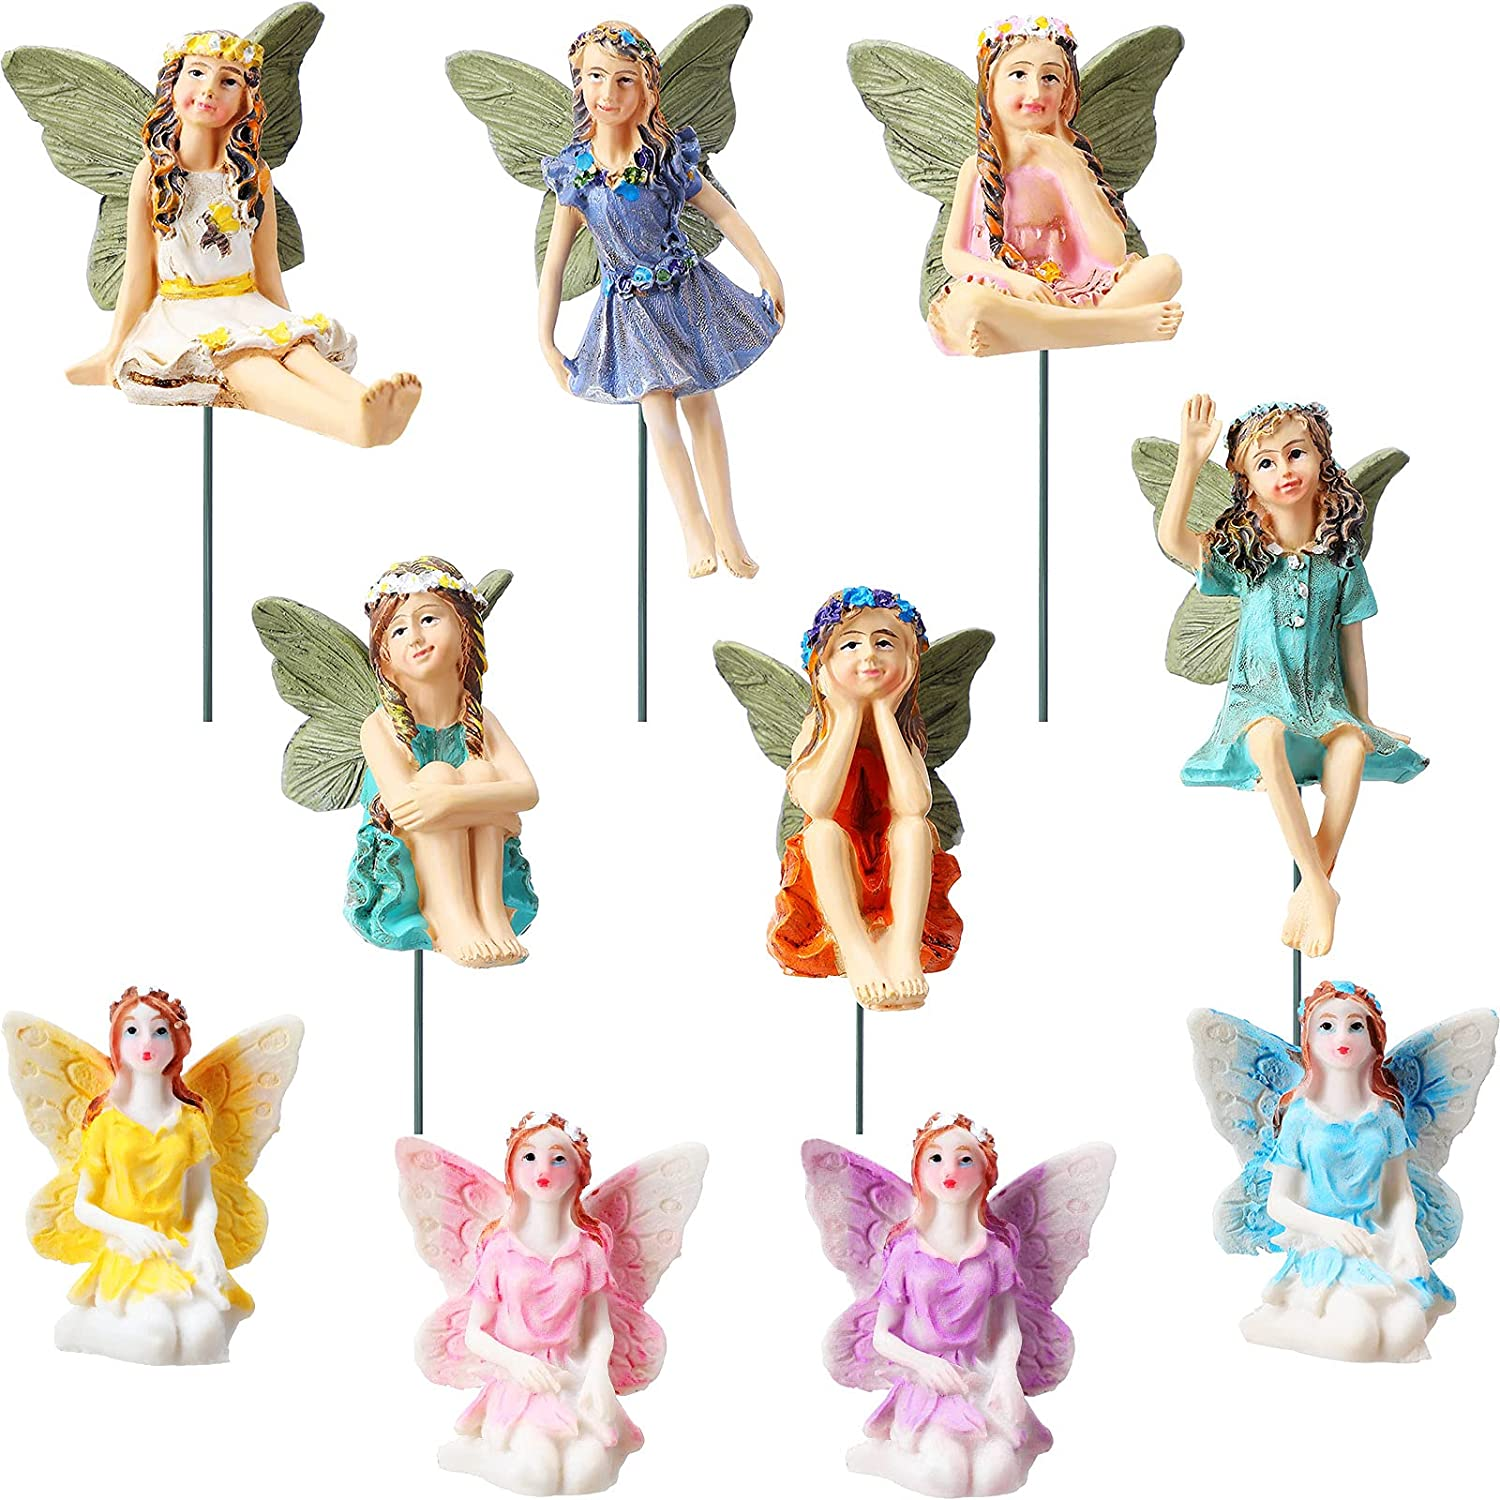 10 Pieces Fairy Garden Resin Garden Fairies Miniatures Figurines Accessories Little Girls Potted Plants Ornaments for Yard Lawn Outdoor Home Decoration